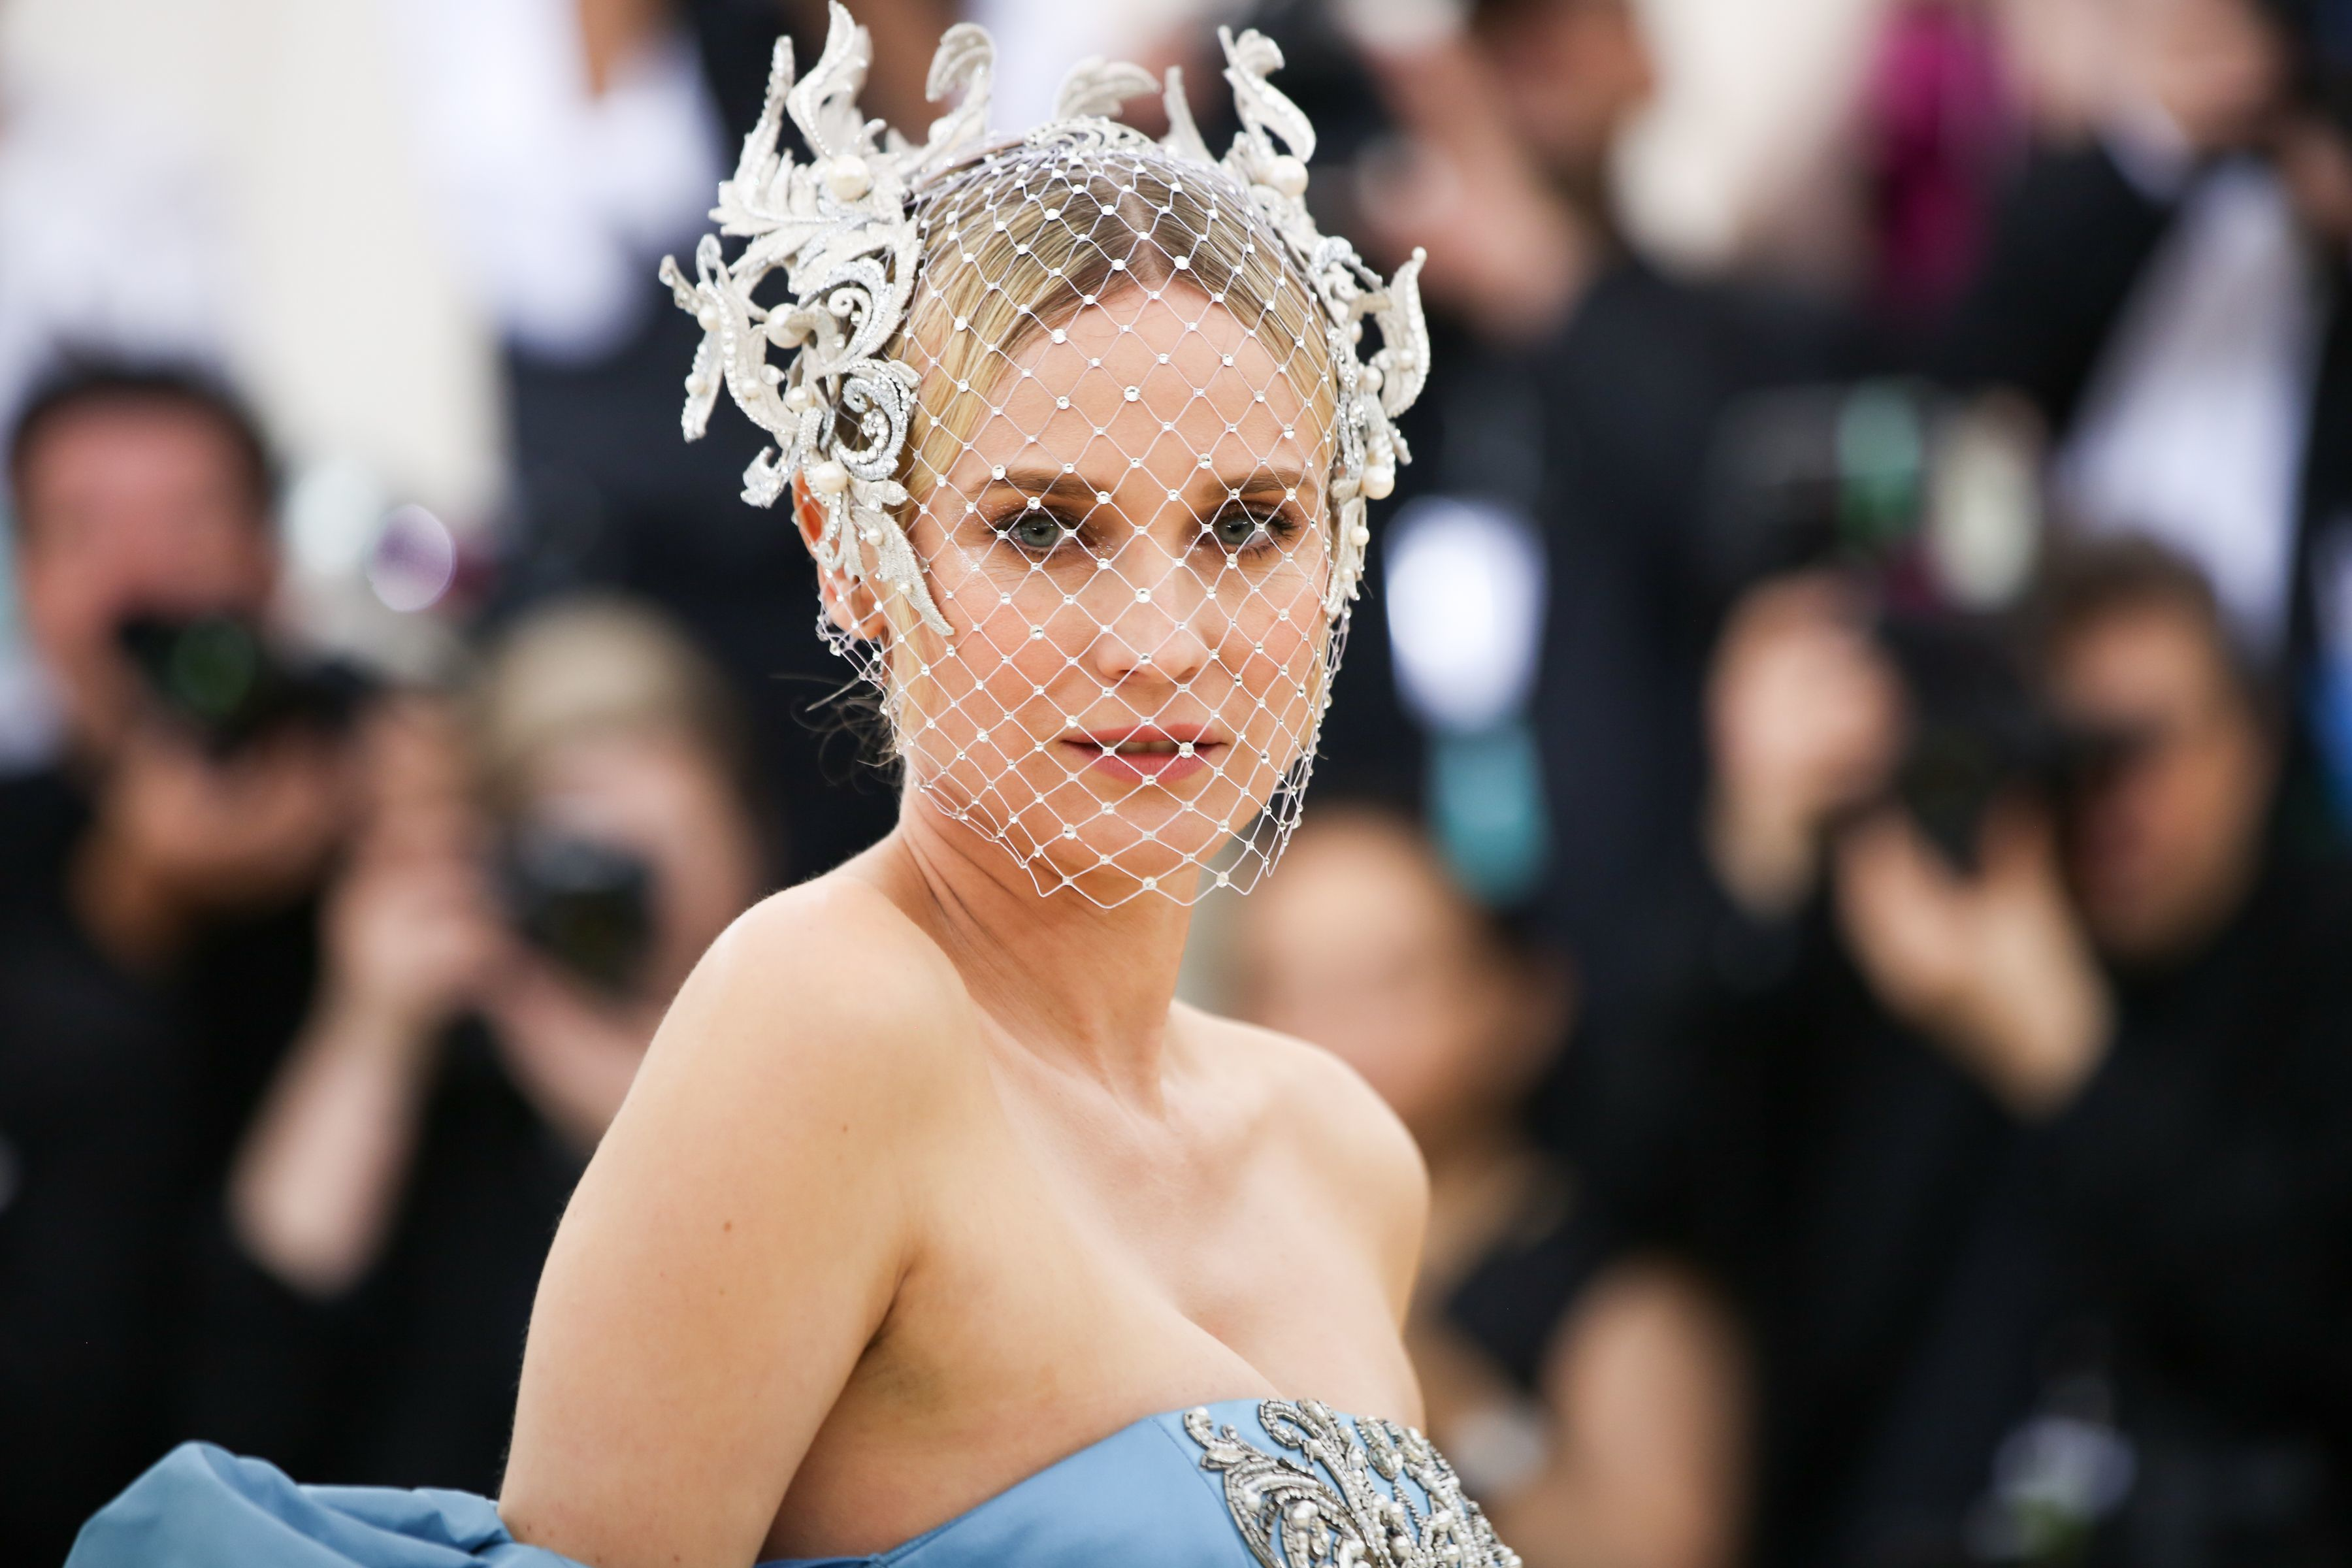 Diane Kruger attends the Heavenly Bodies: Fashion & The Catholic Imagination Costume Institute Gala at The Metropolitan Museum of Art in New York City on May 7, 2018.